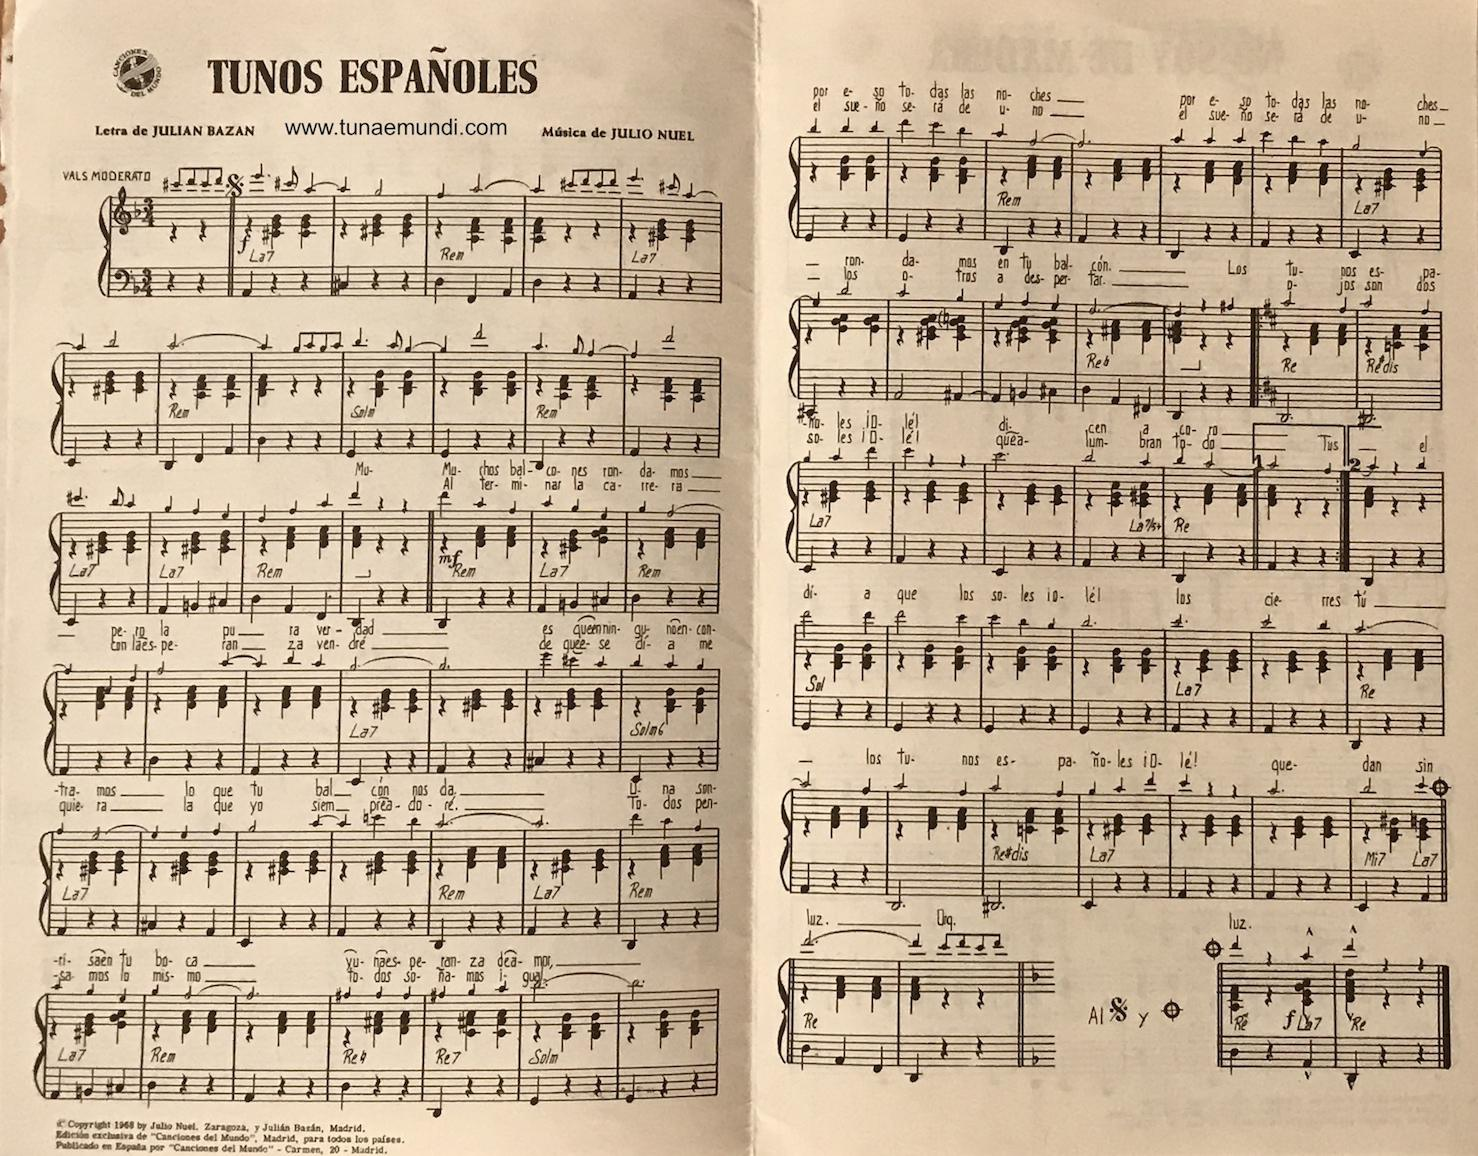 Tunos espanoles guion director - partitura 1968